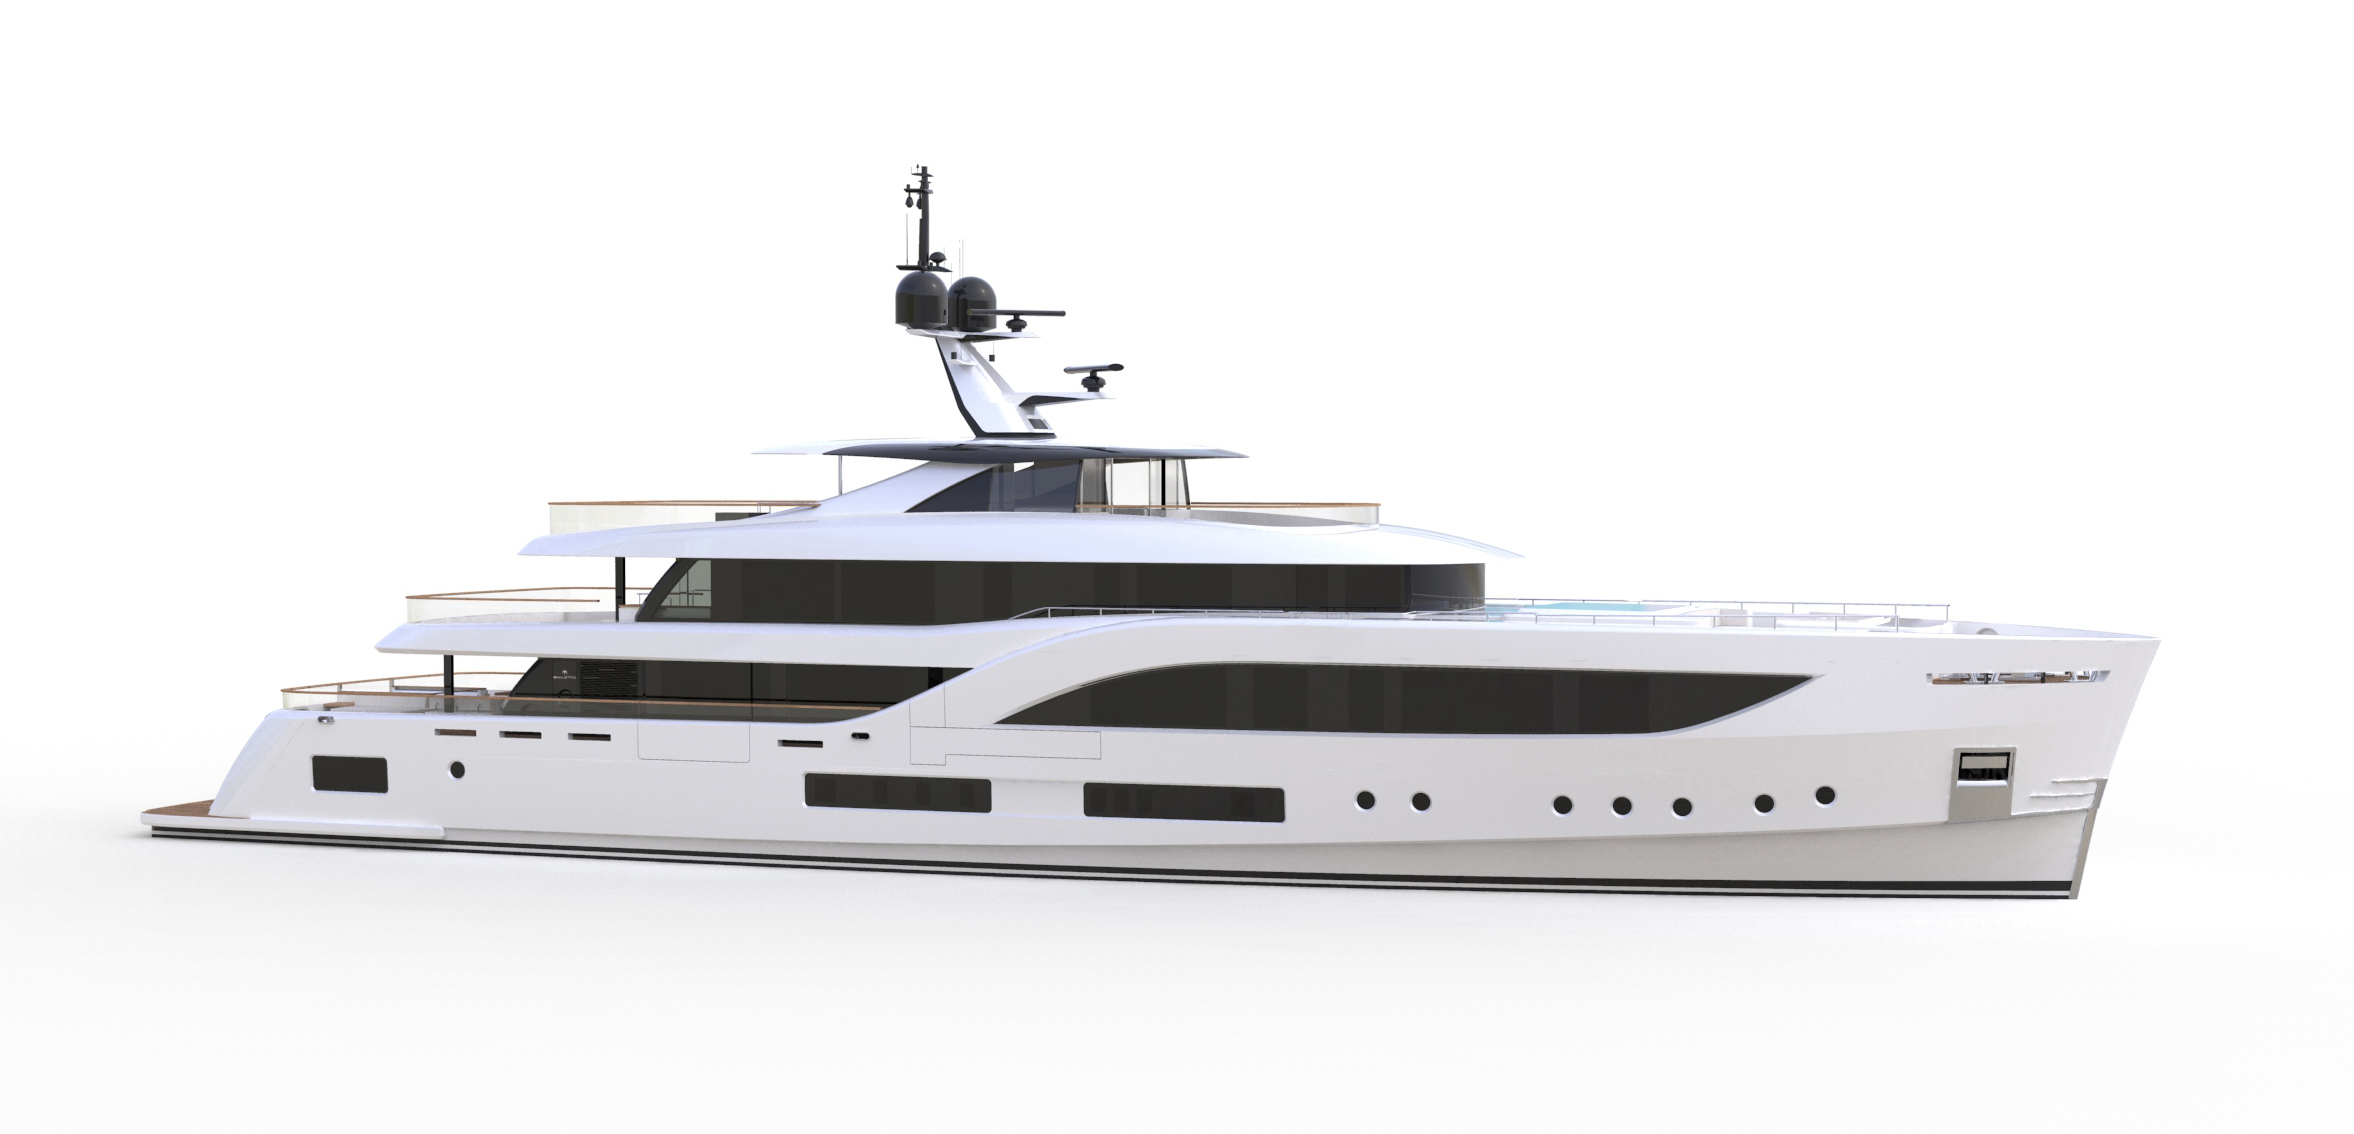 Baglietto reveals first image of the new 54m hull #10231